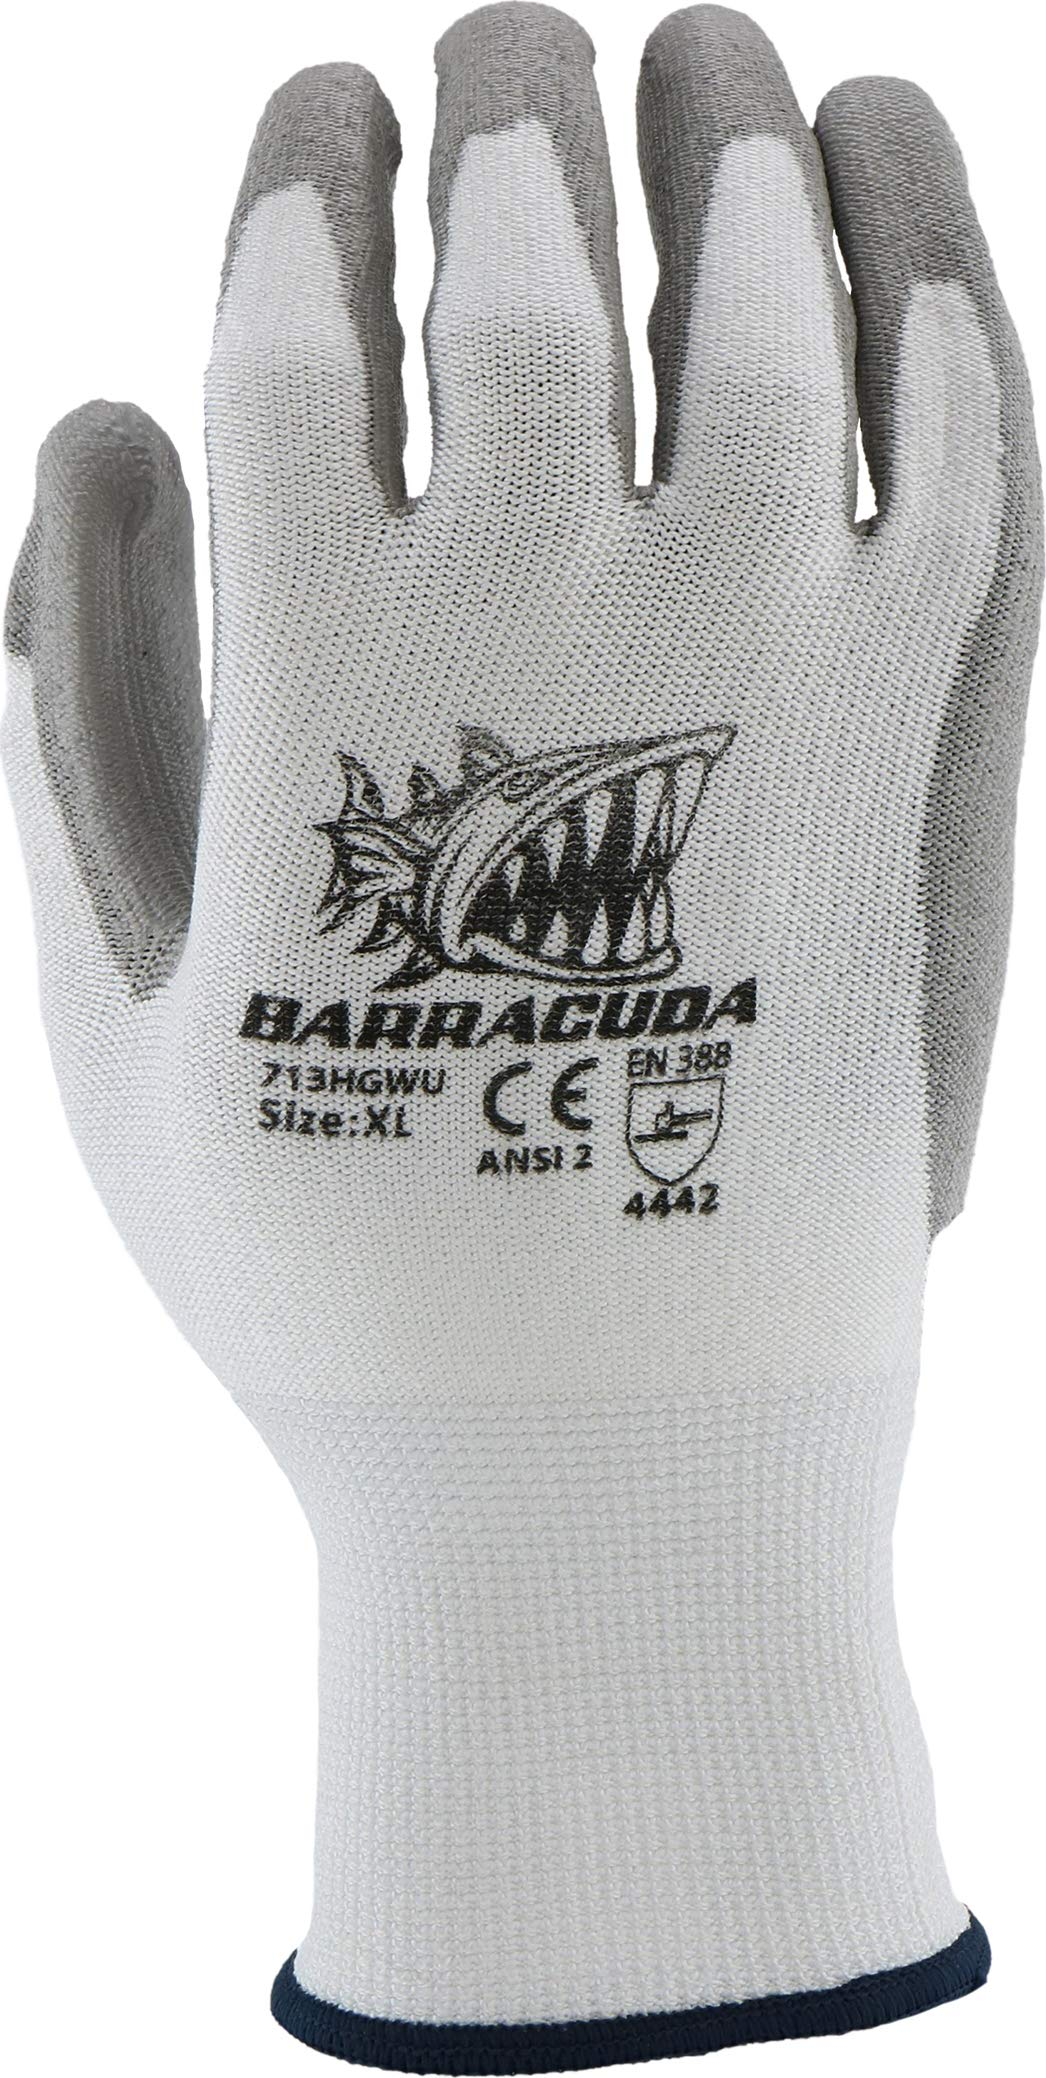 West Chester 713HGWU XL Barracuda White HPPE Shell with Grey PU Dip Cut Protection Gloves, XL (Pack of 12) by West Chester (Image #3)